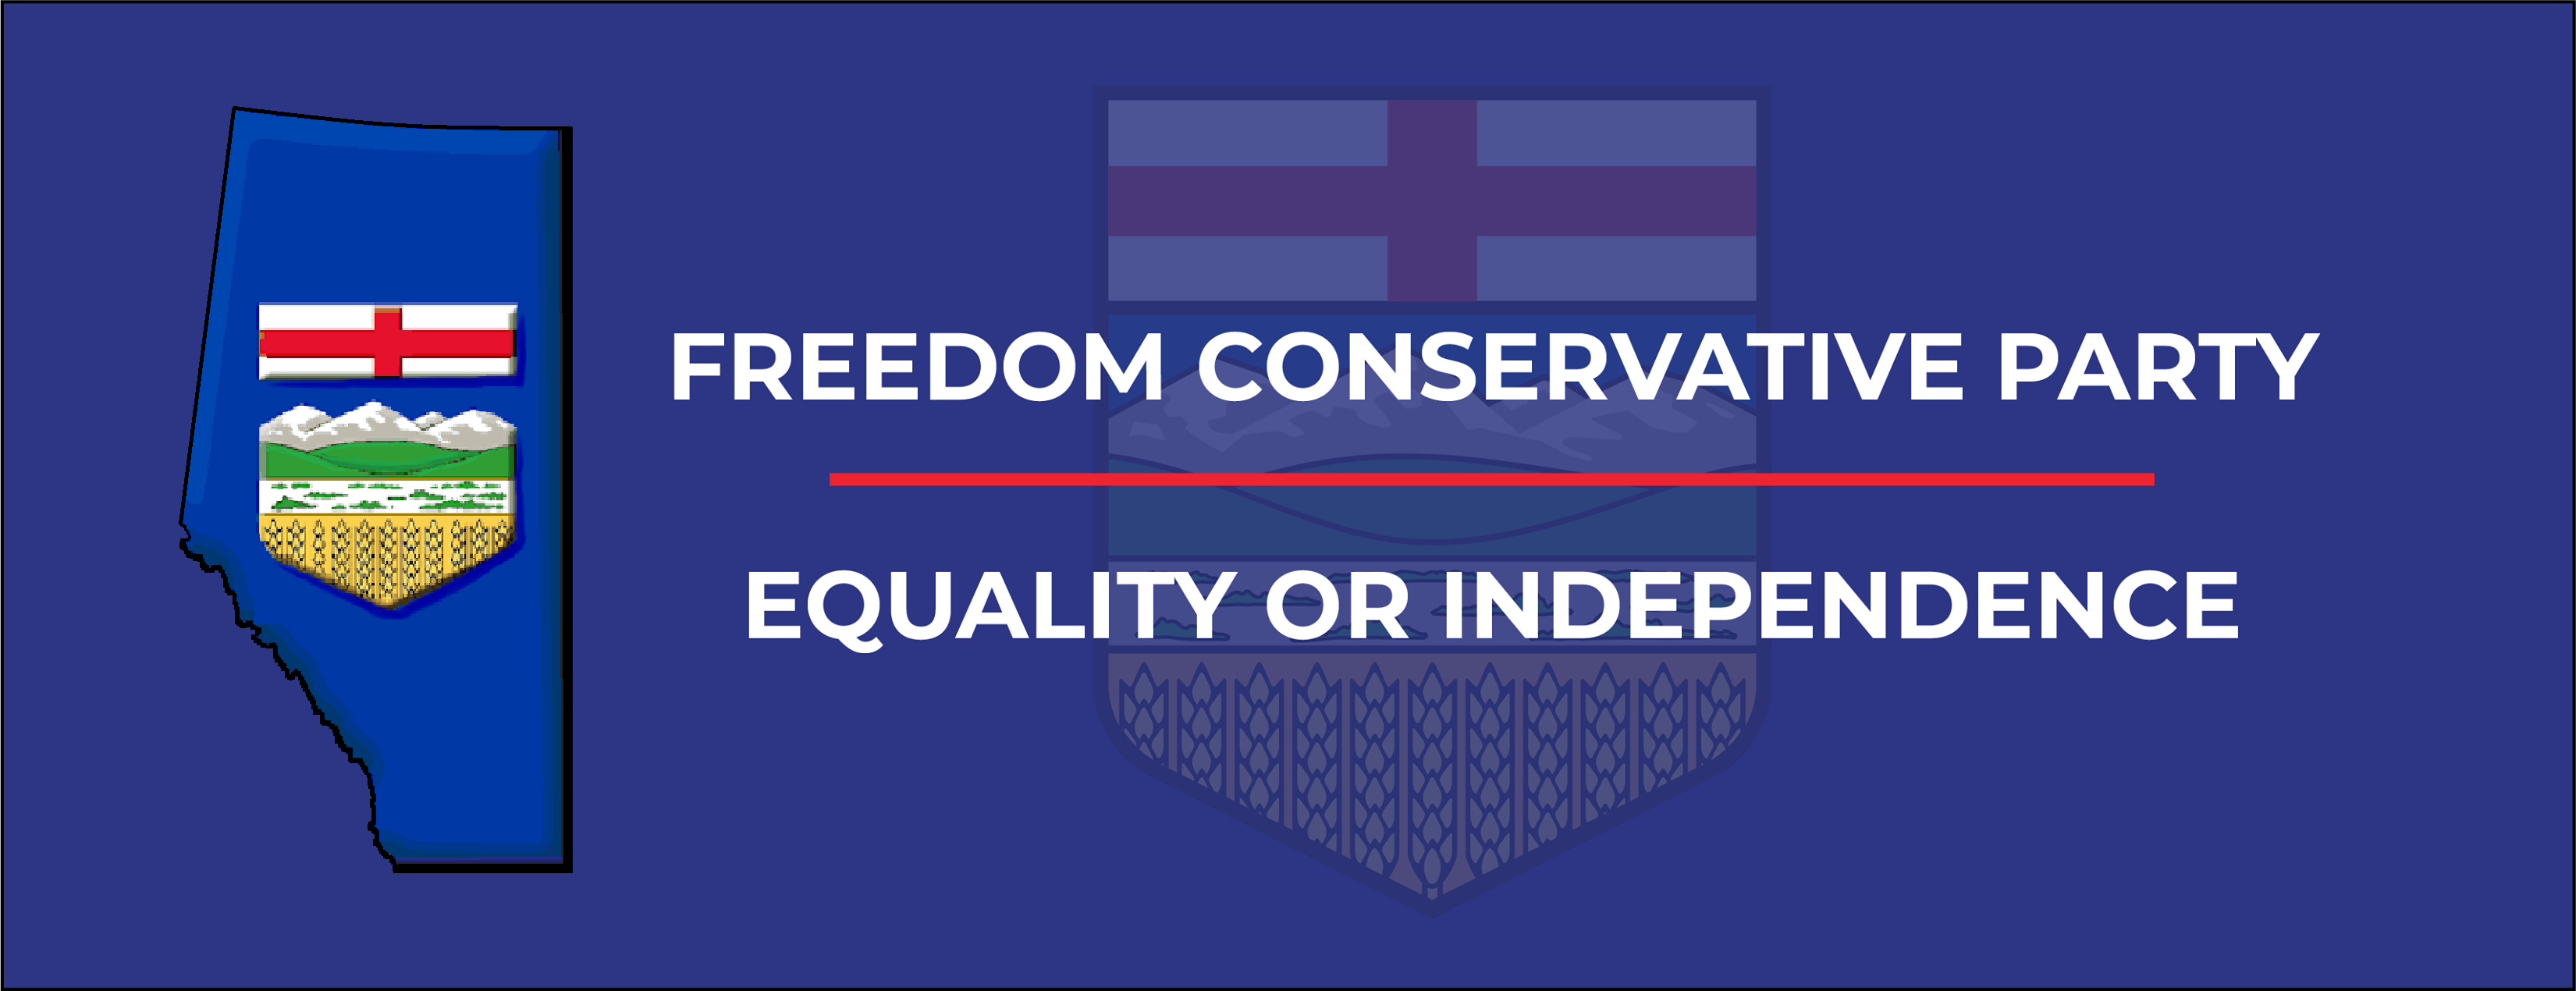 RELEASE: FCP Supports Buffalo Declaration Backing Equality or Independence